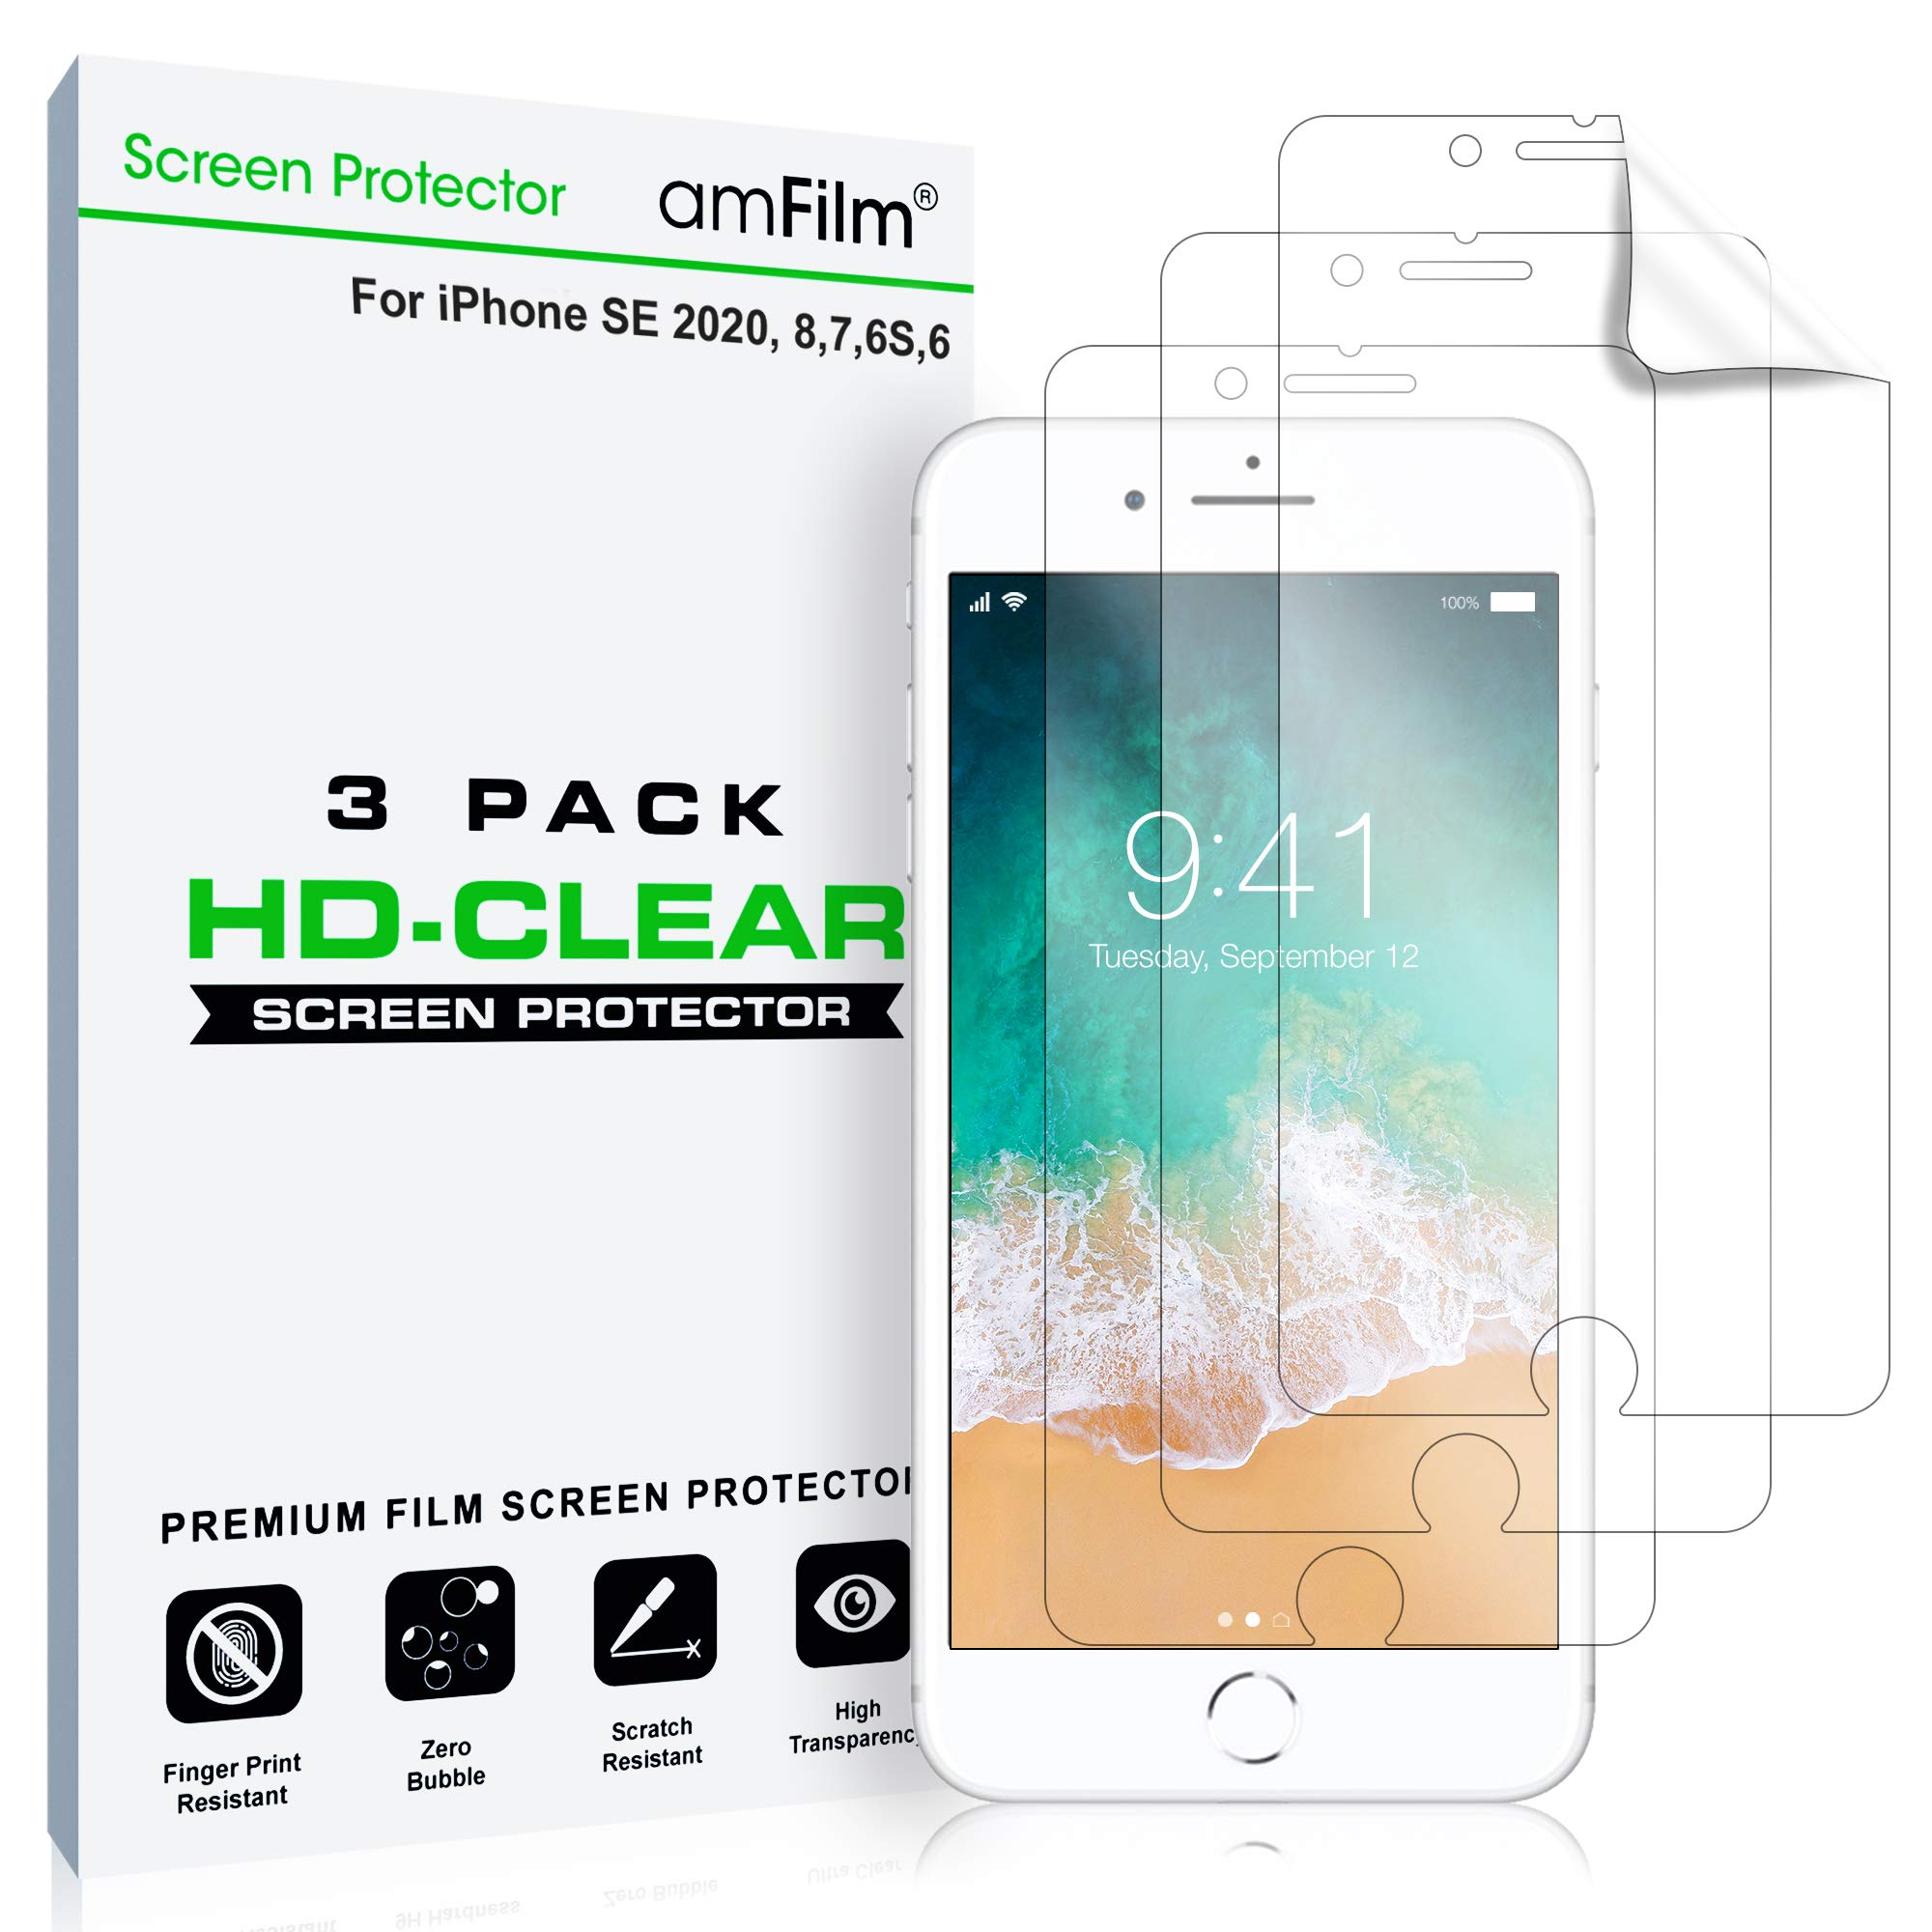 amFilm Screen Protector for iPhone SE (2020), 8, 7, 6S, 6 (3 Pack) HD Clear, Flex Film, Case Friendly